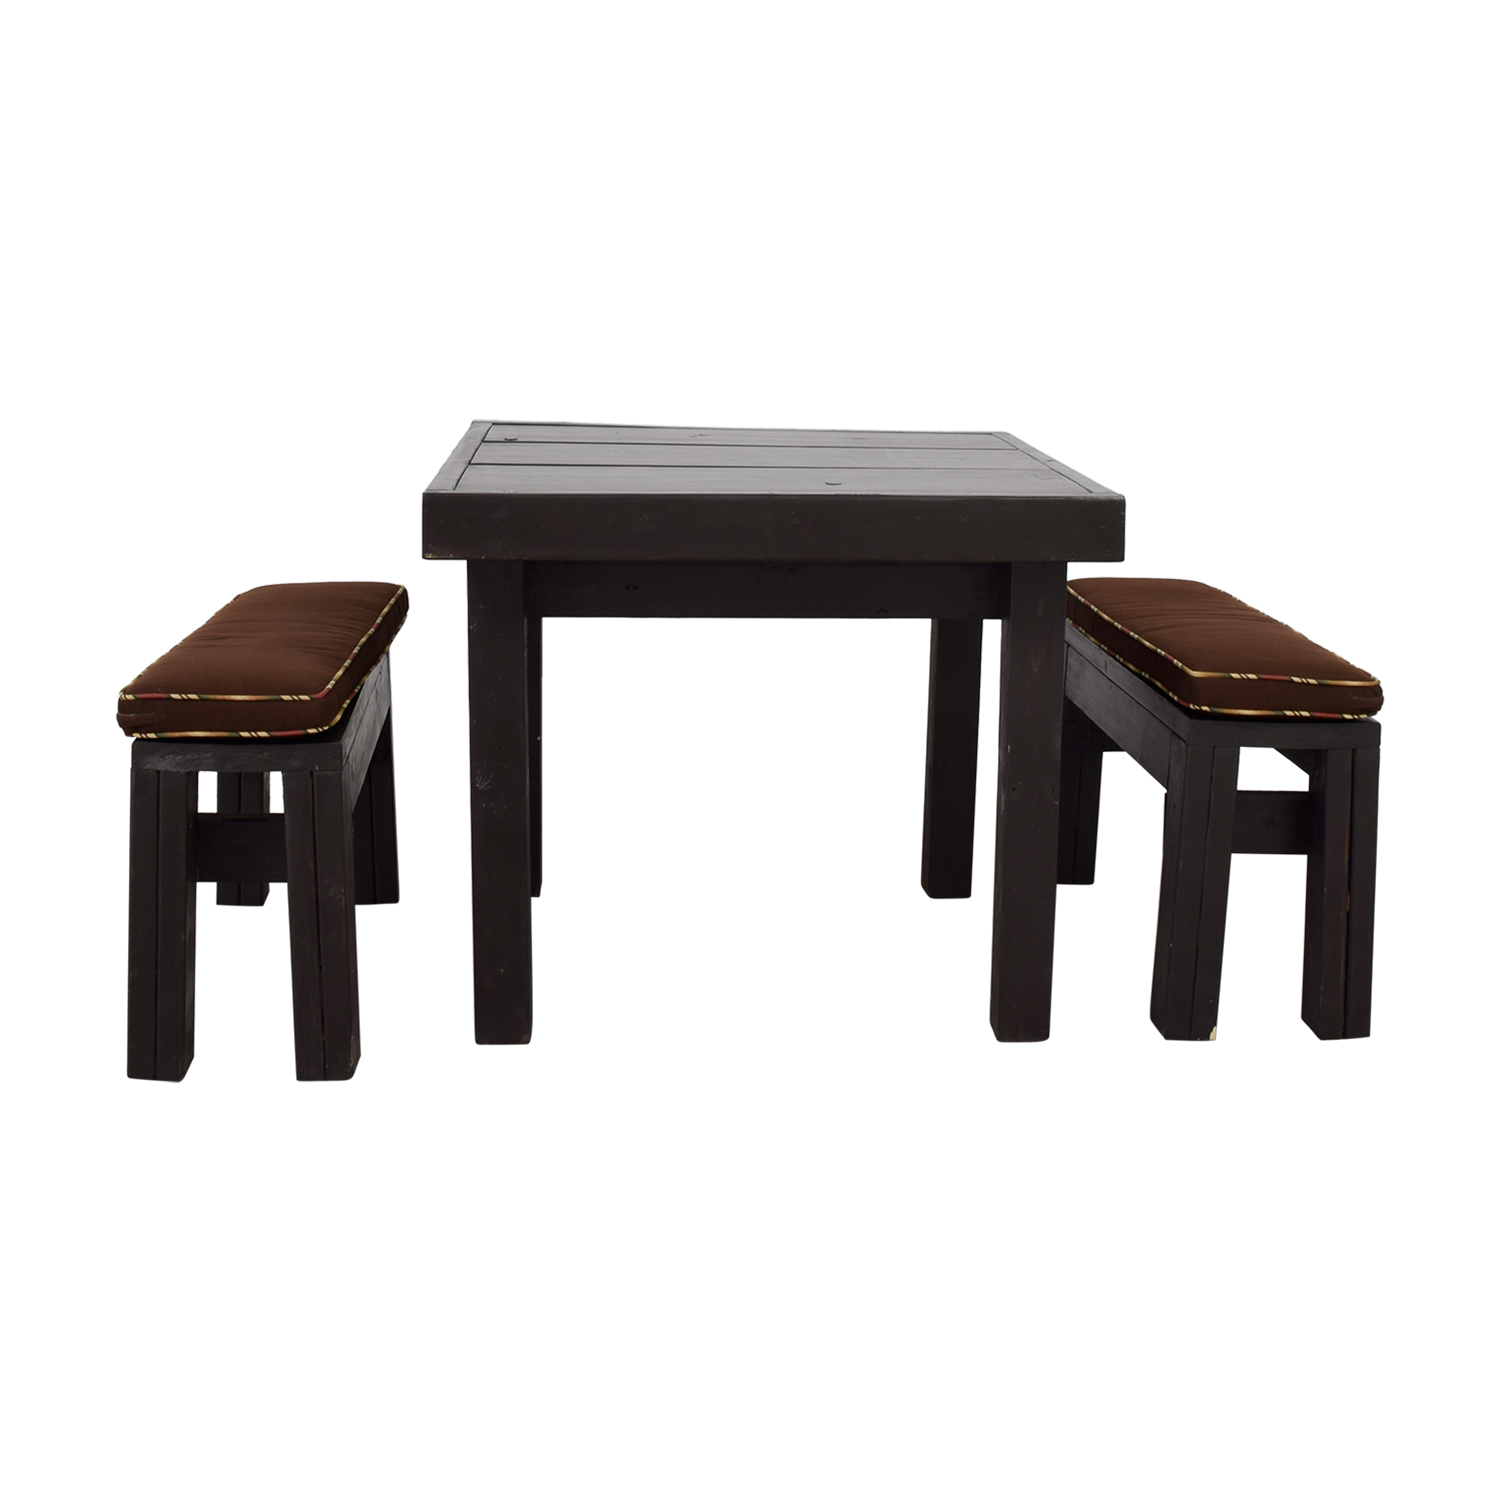 Ballard Design Ballard Design Modern Rust Table with Benches with Tempered Glass Top and Seat Cushions for sale